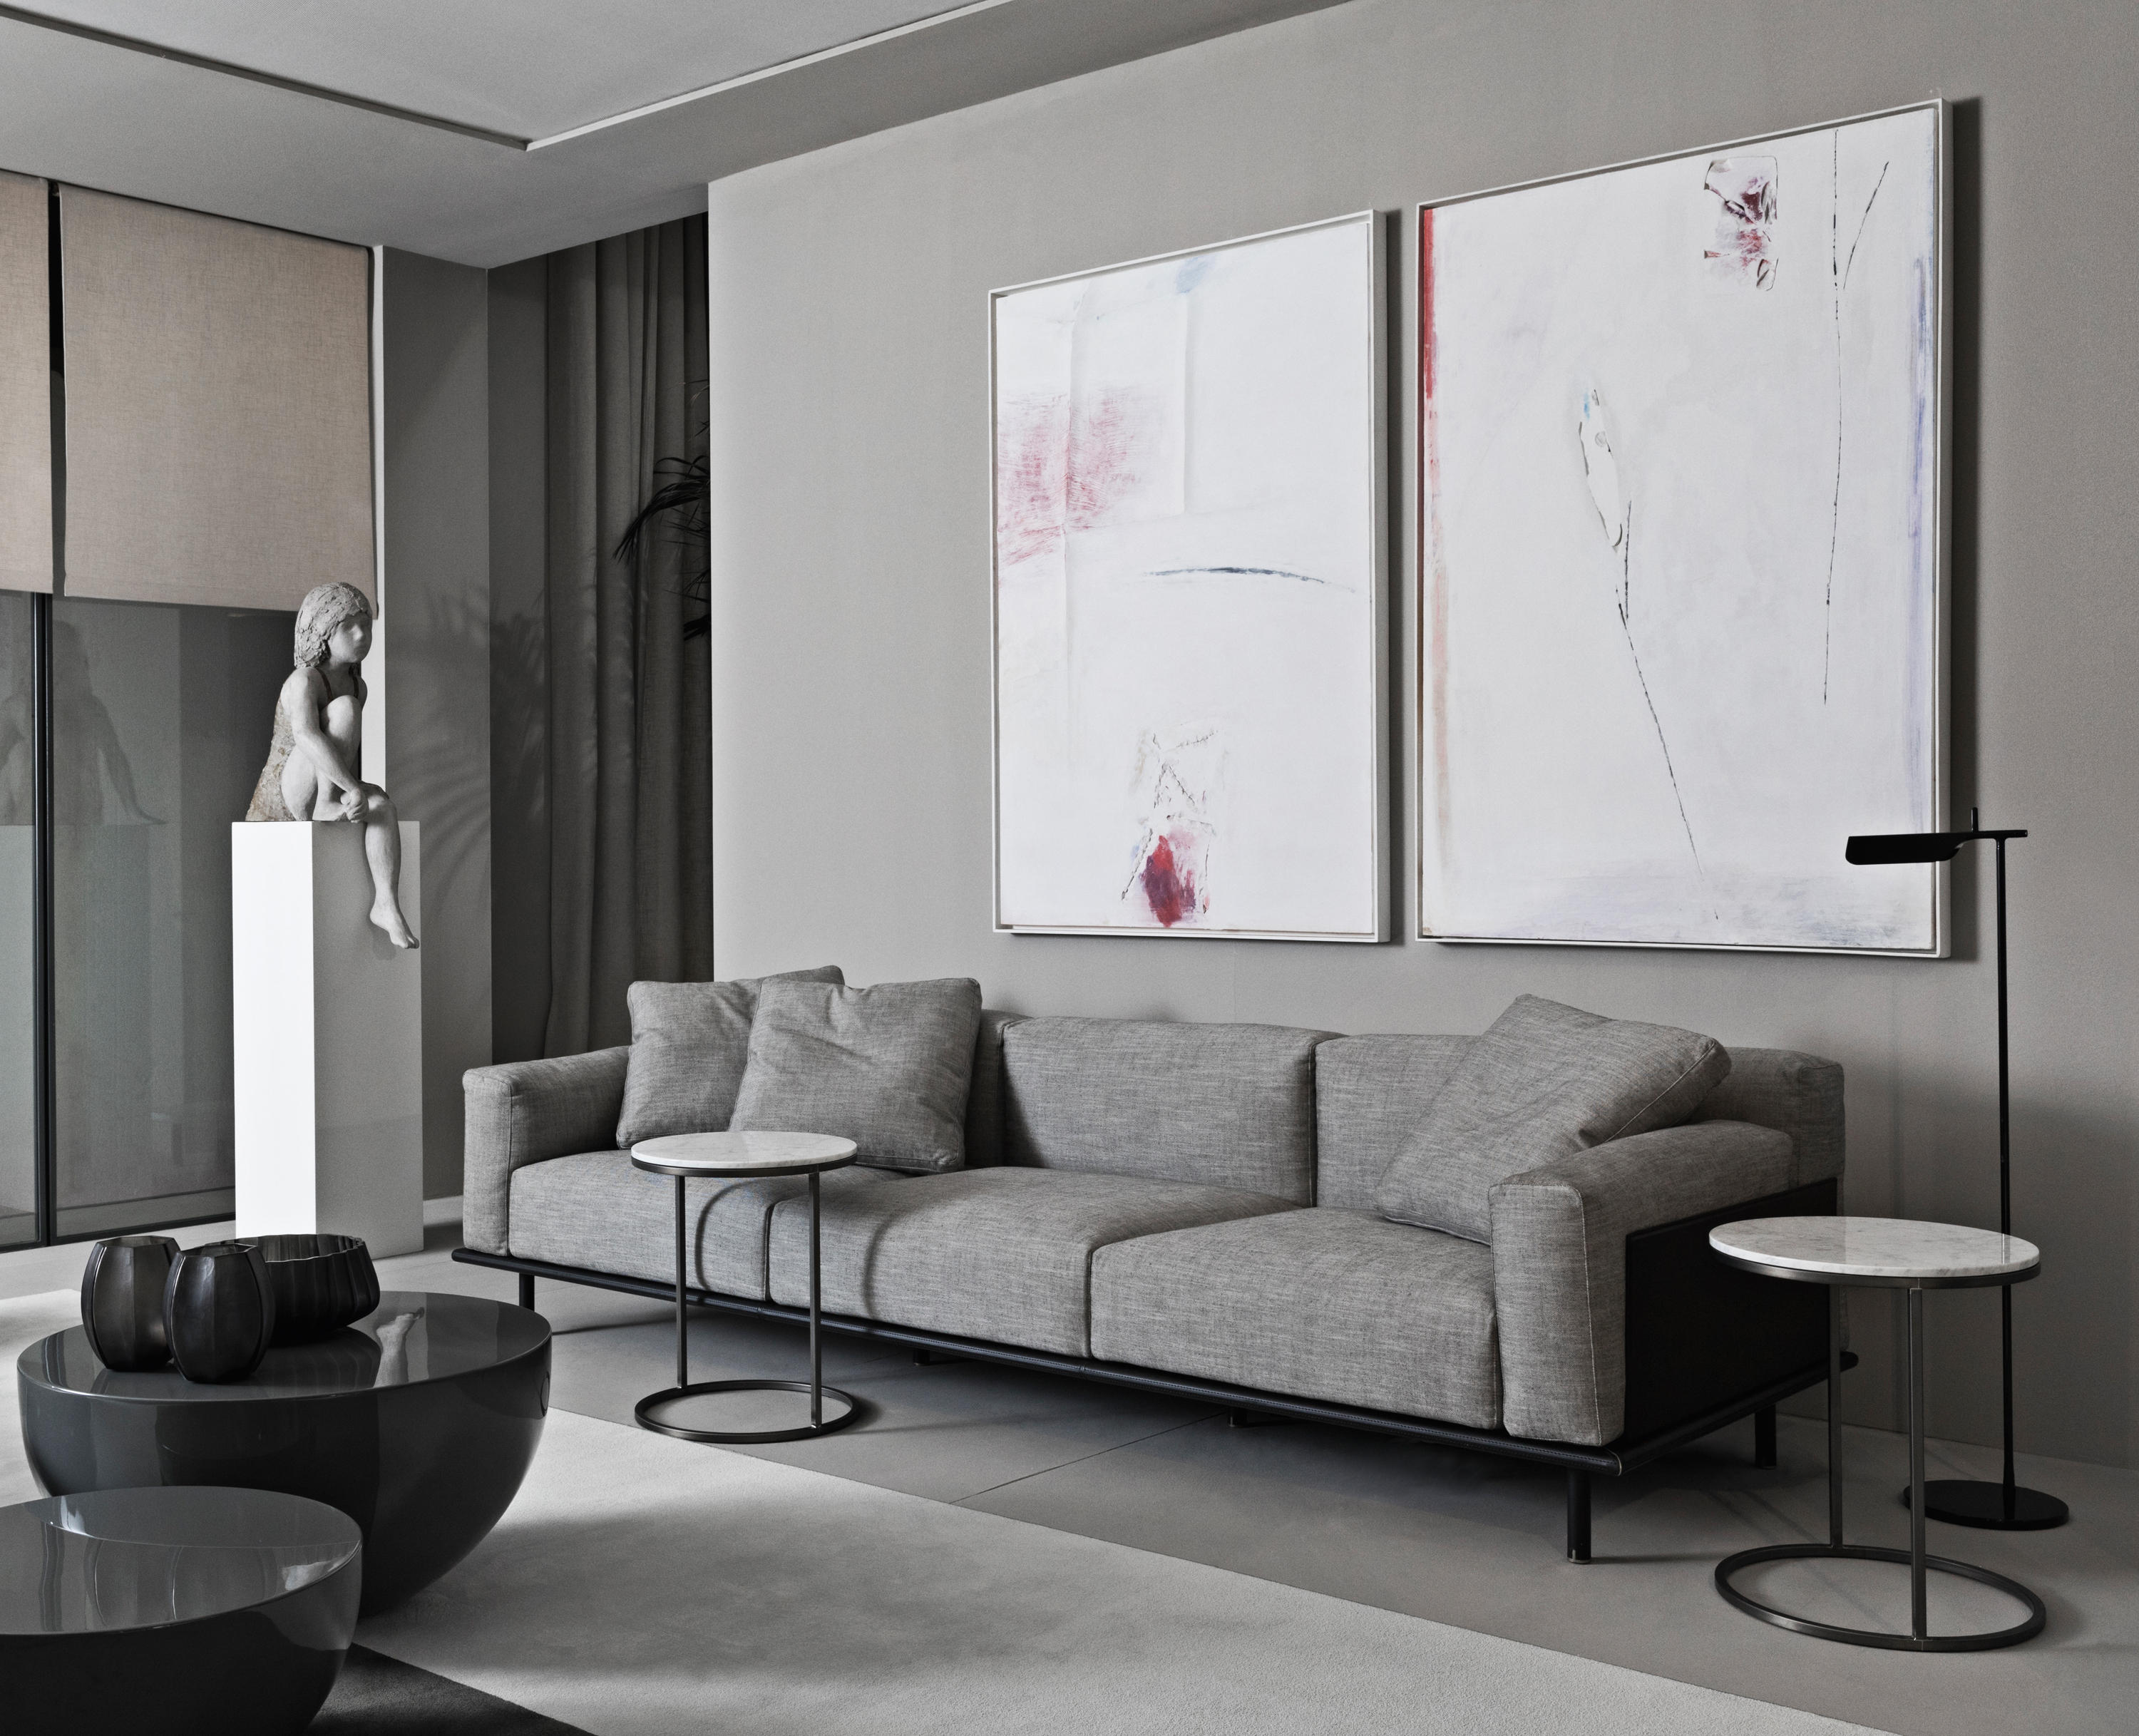 Timothy sofa lounge sofas from meridiani architonic timothy sofa by meridiani lounge sofas parisarafo Image collections